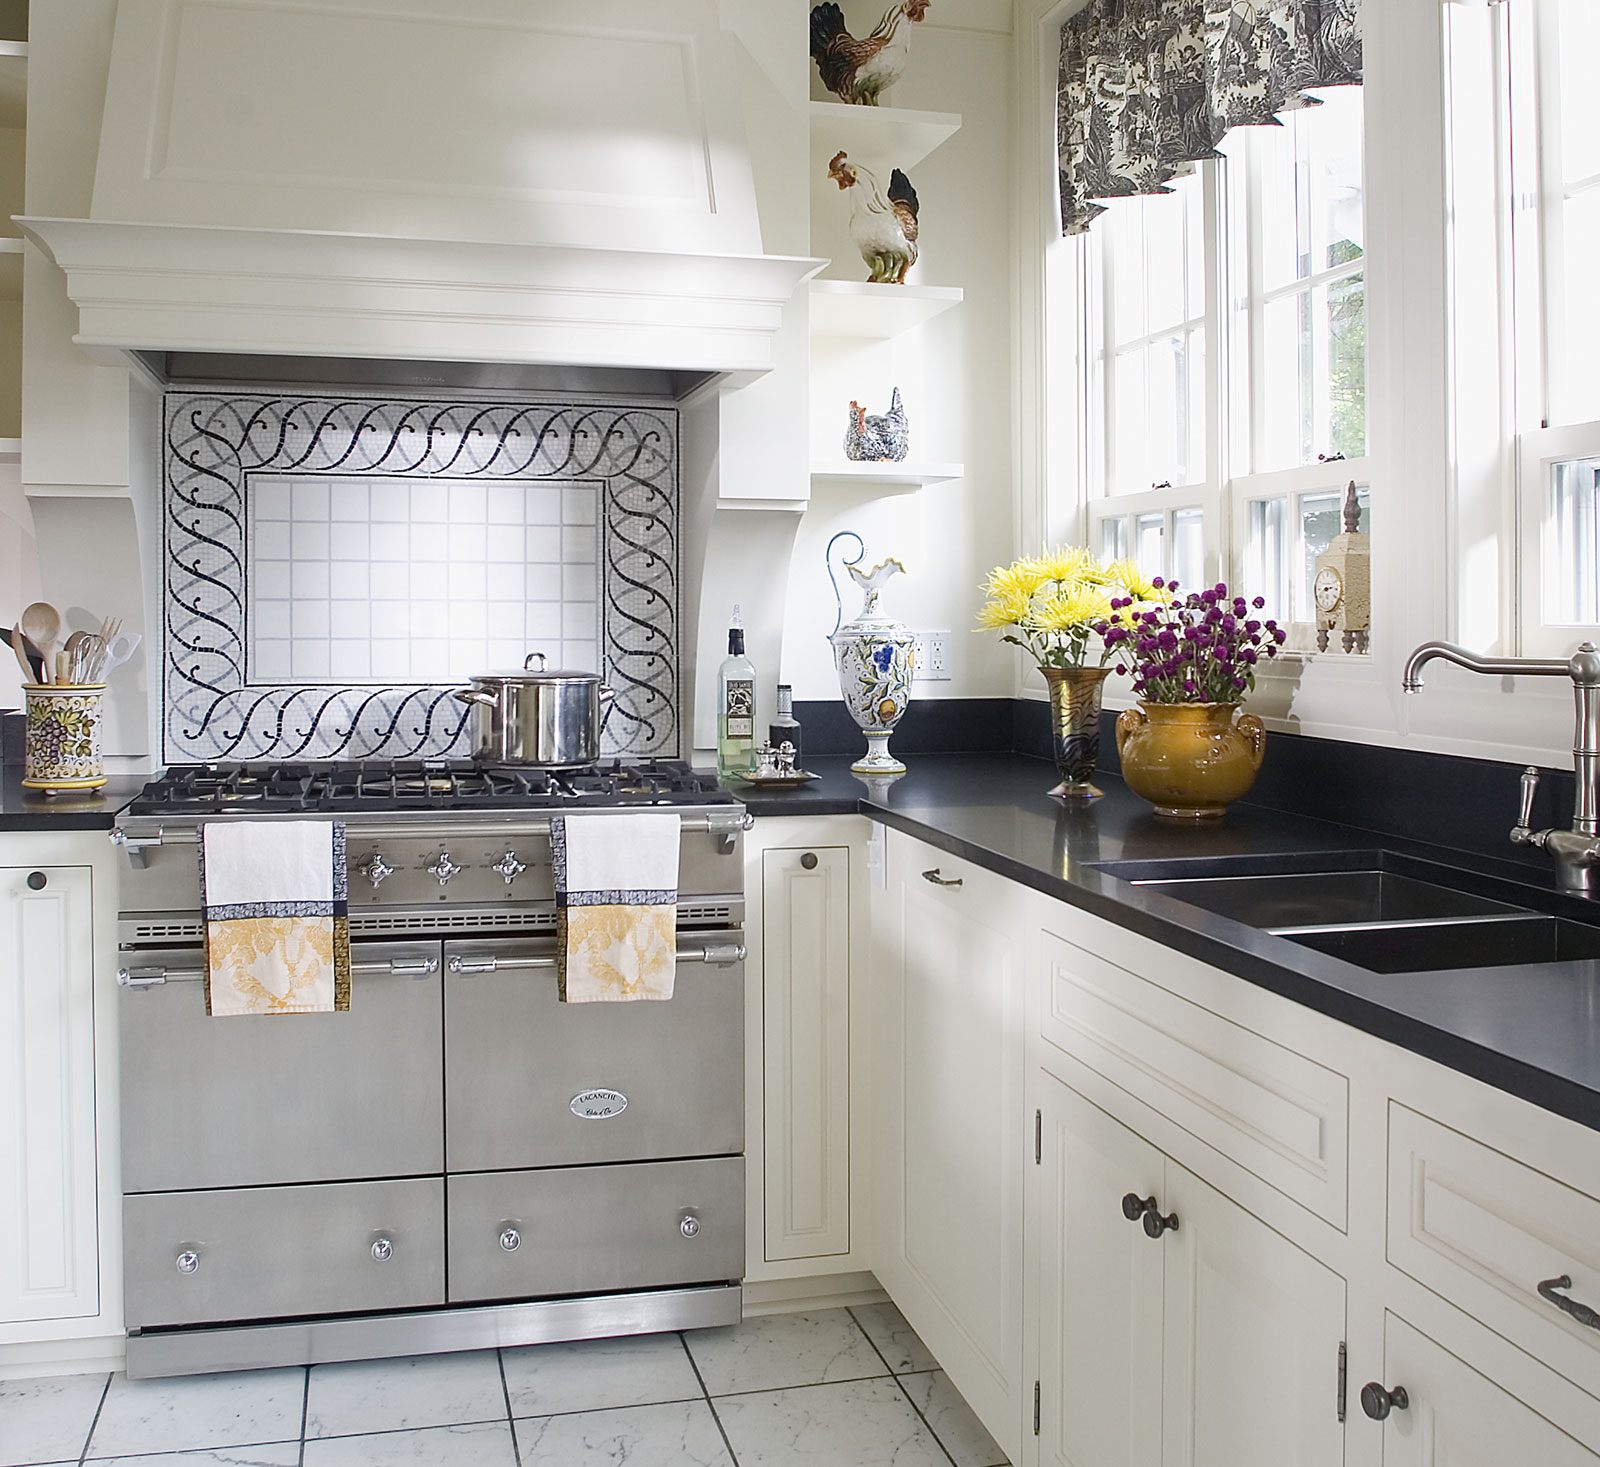 Welcoming Intimate Showhouse Kitchen: Cluny Cooking Range